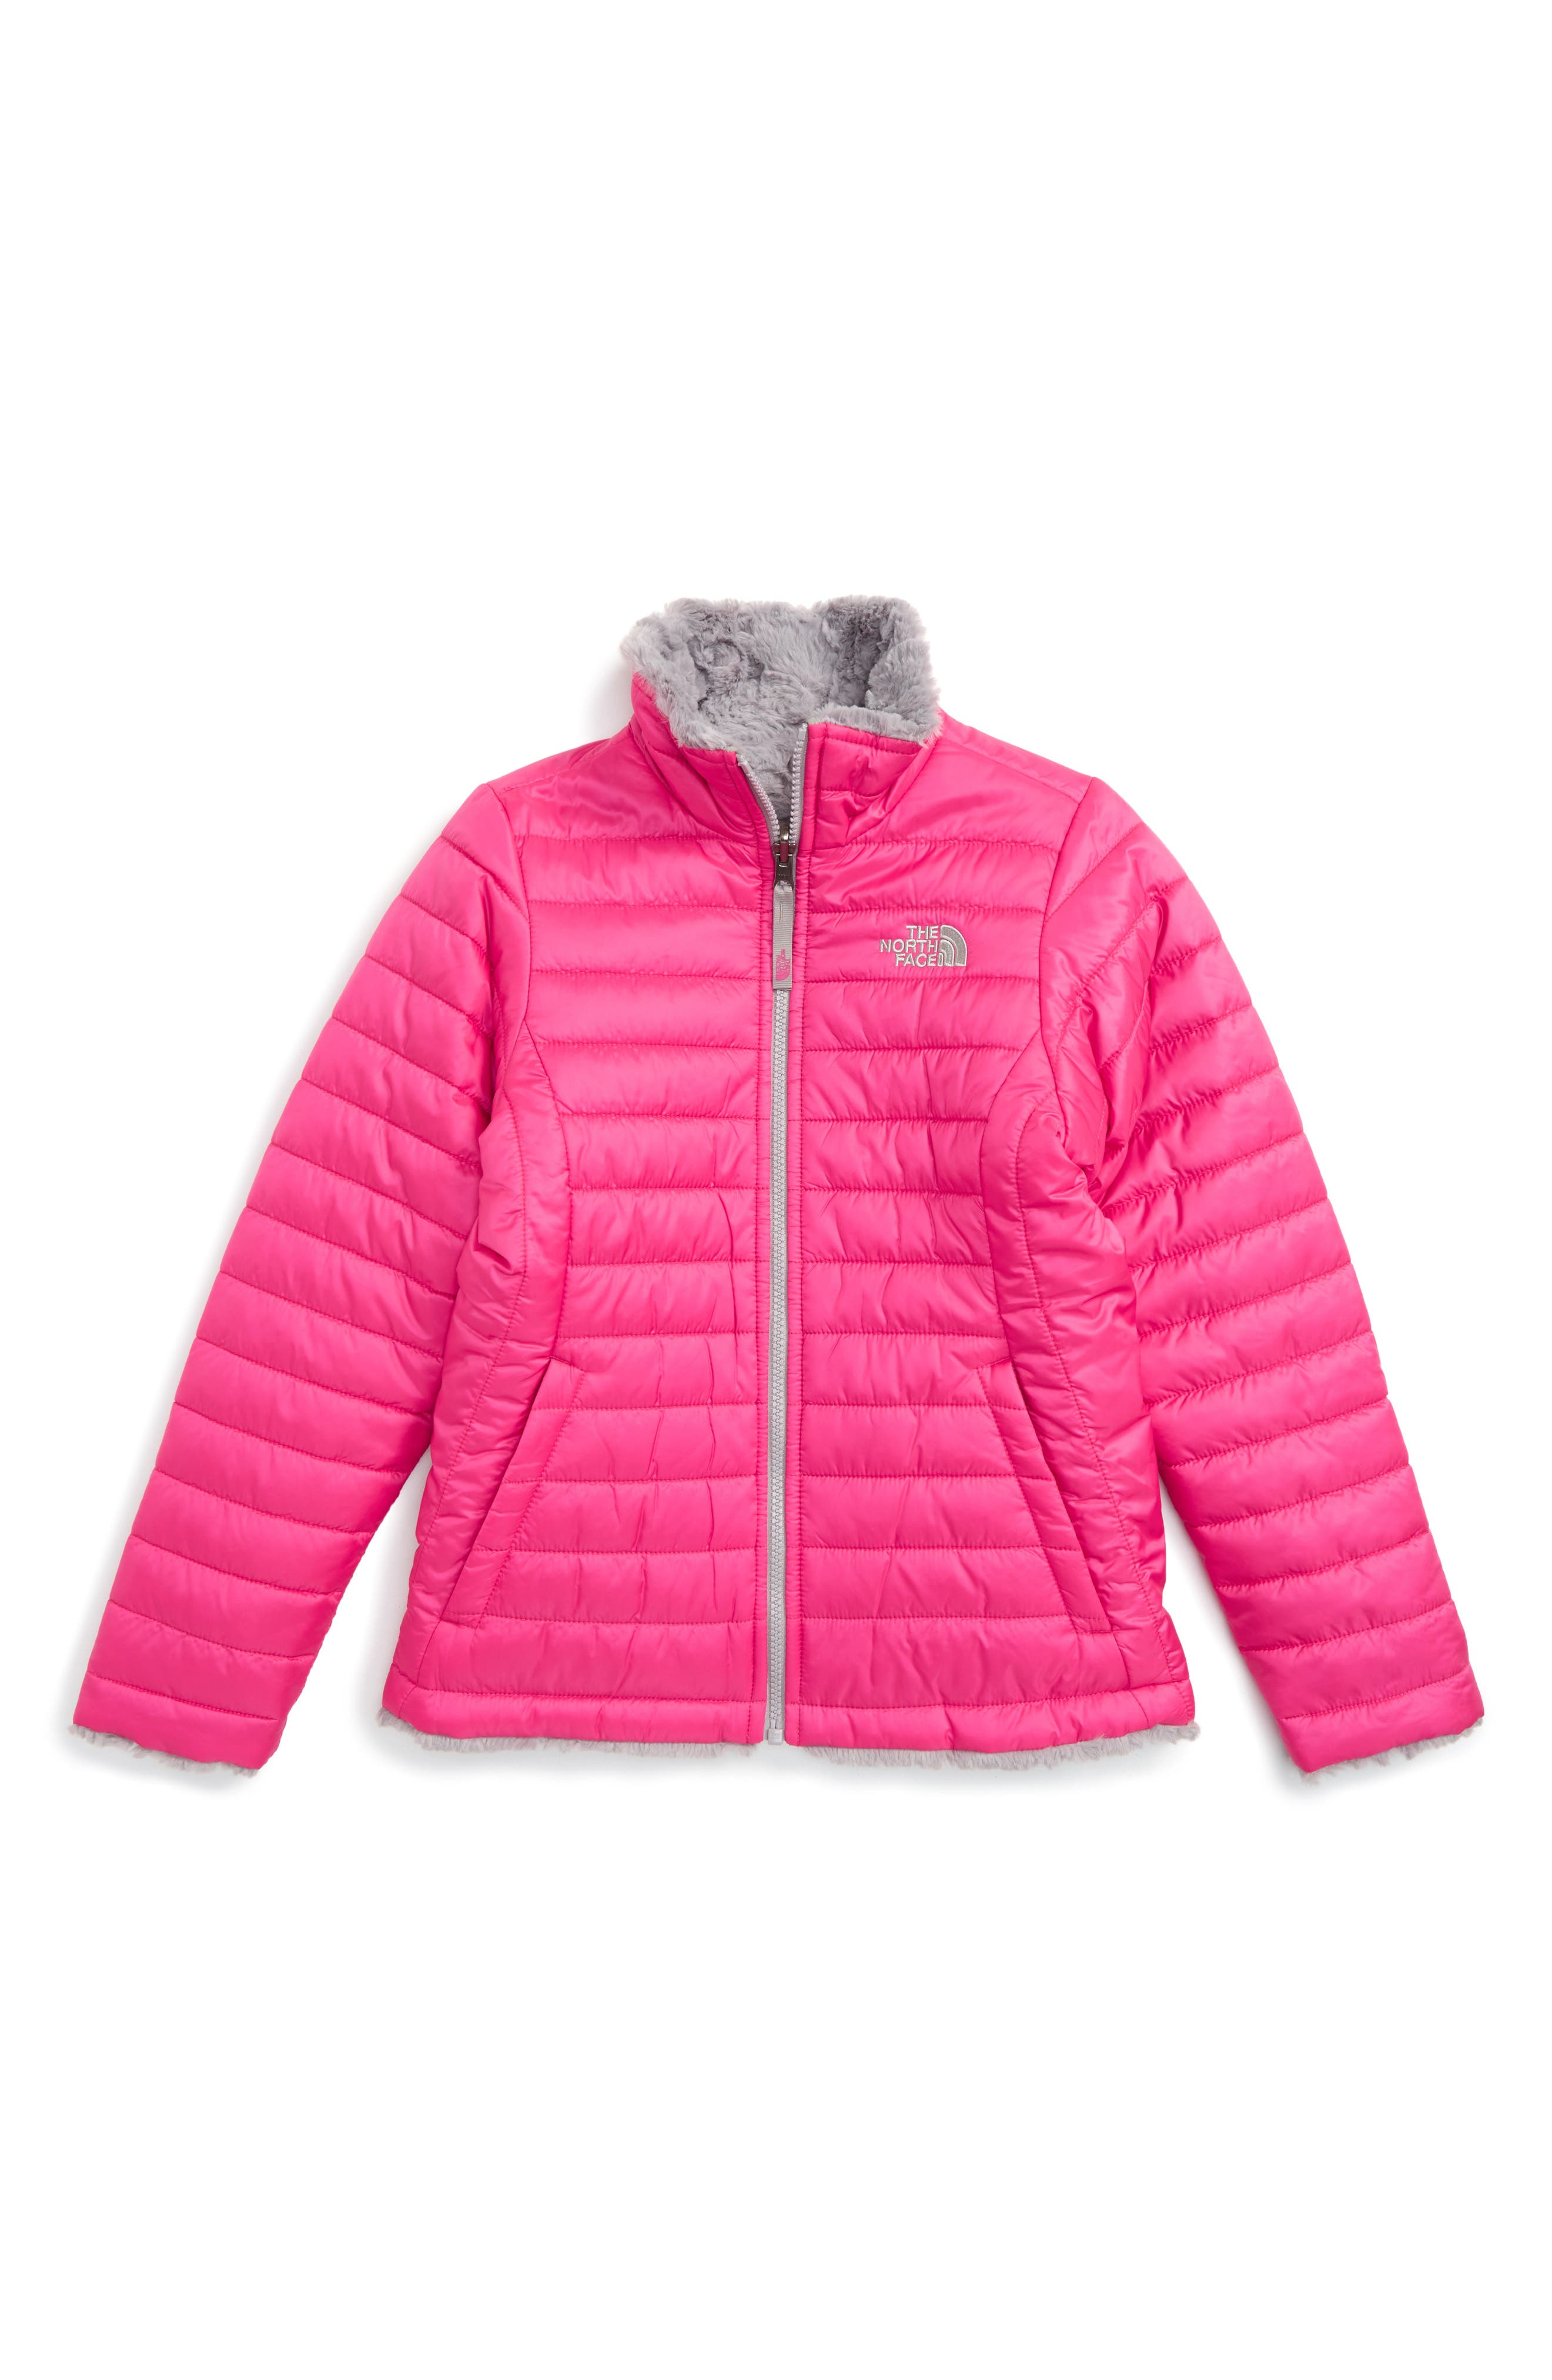 Main Image - The North Face Mossbud Reversible Heatseeker™ Wind Resistant Jacket (Little Girls & Big Girls)